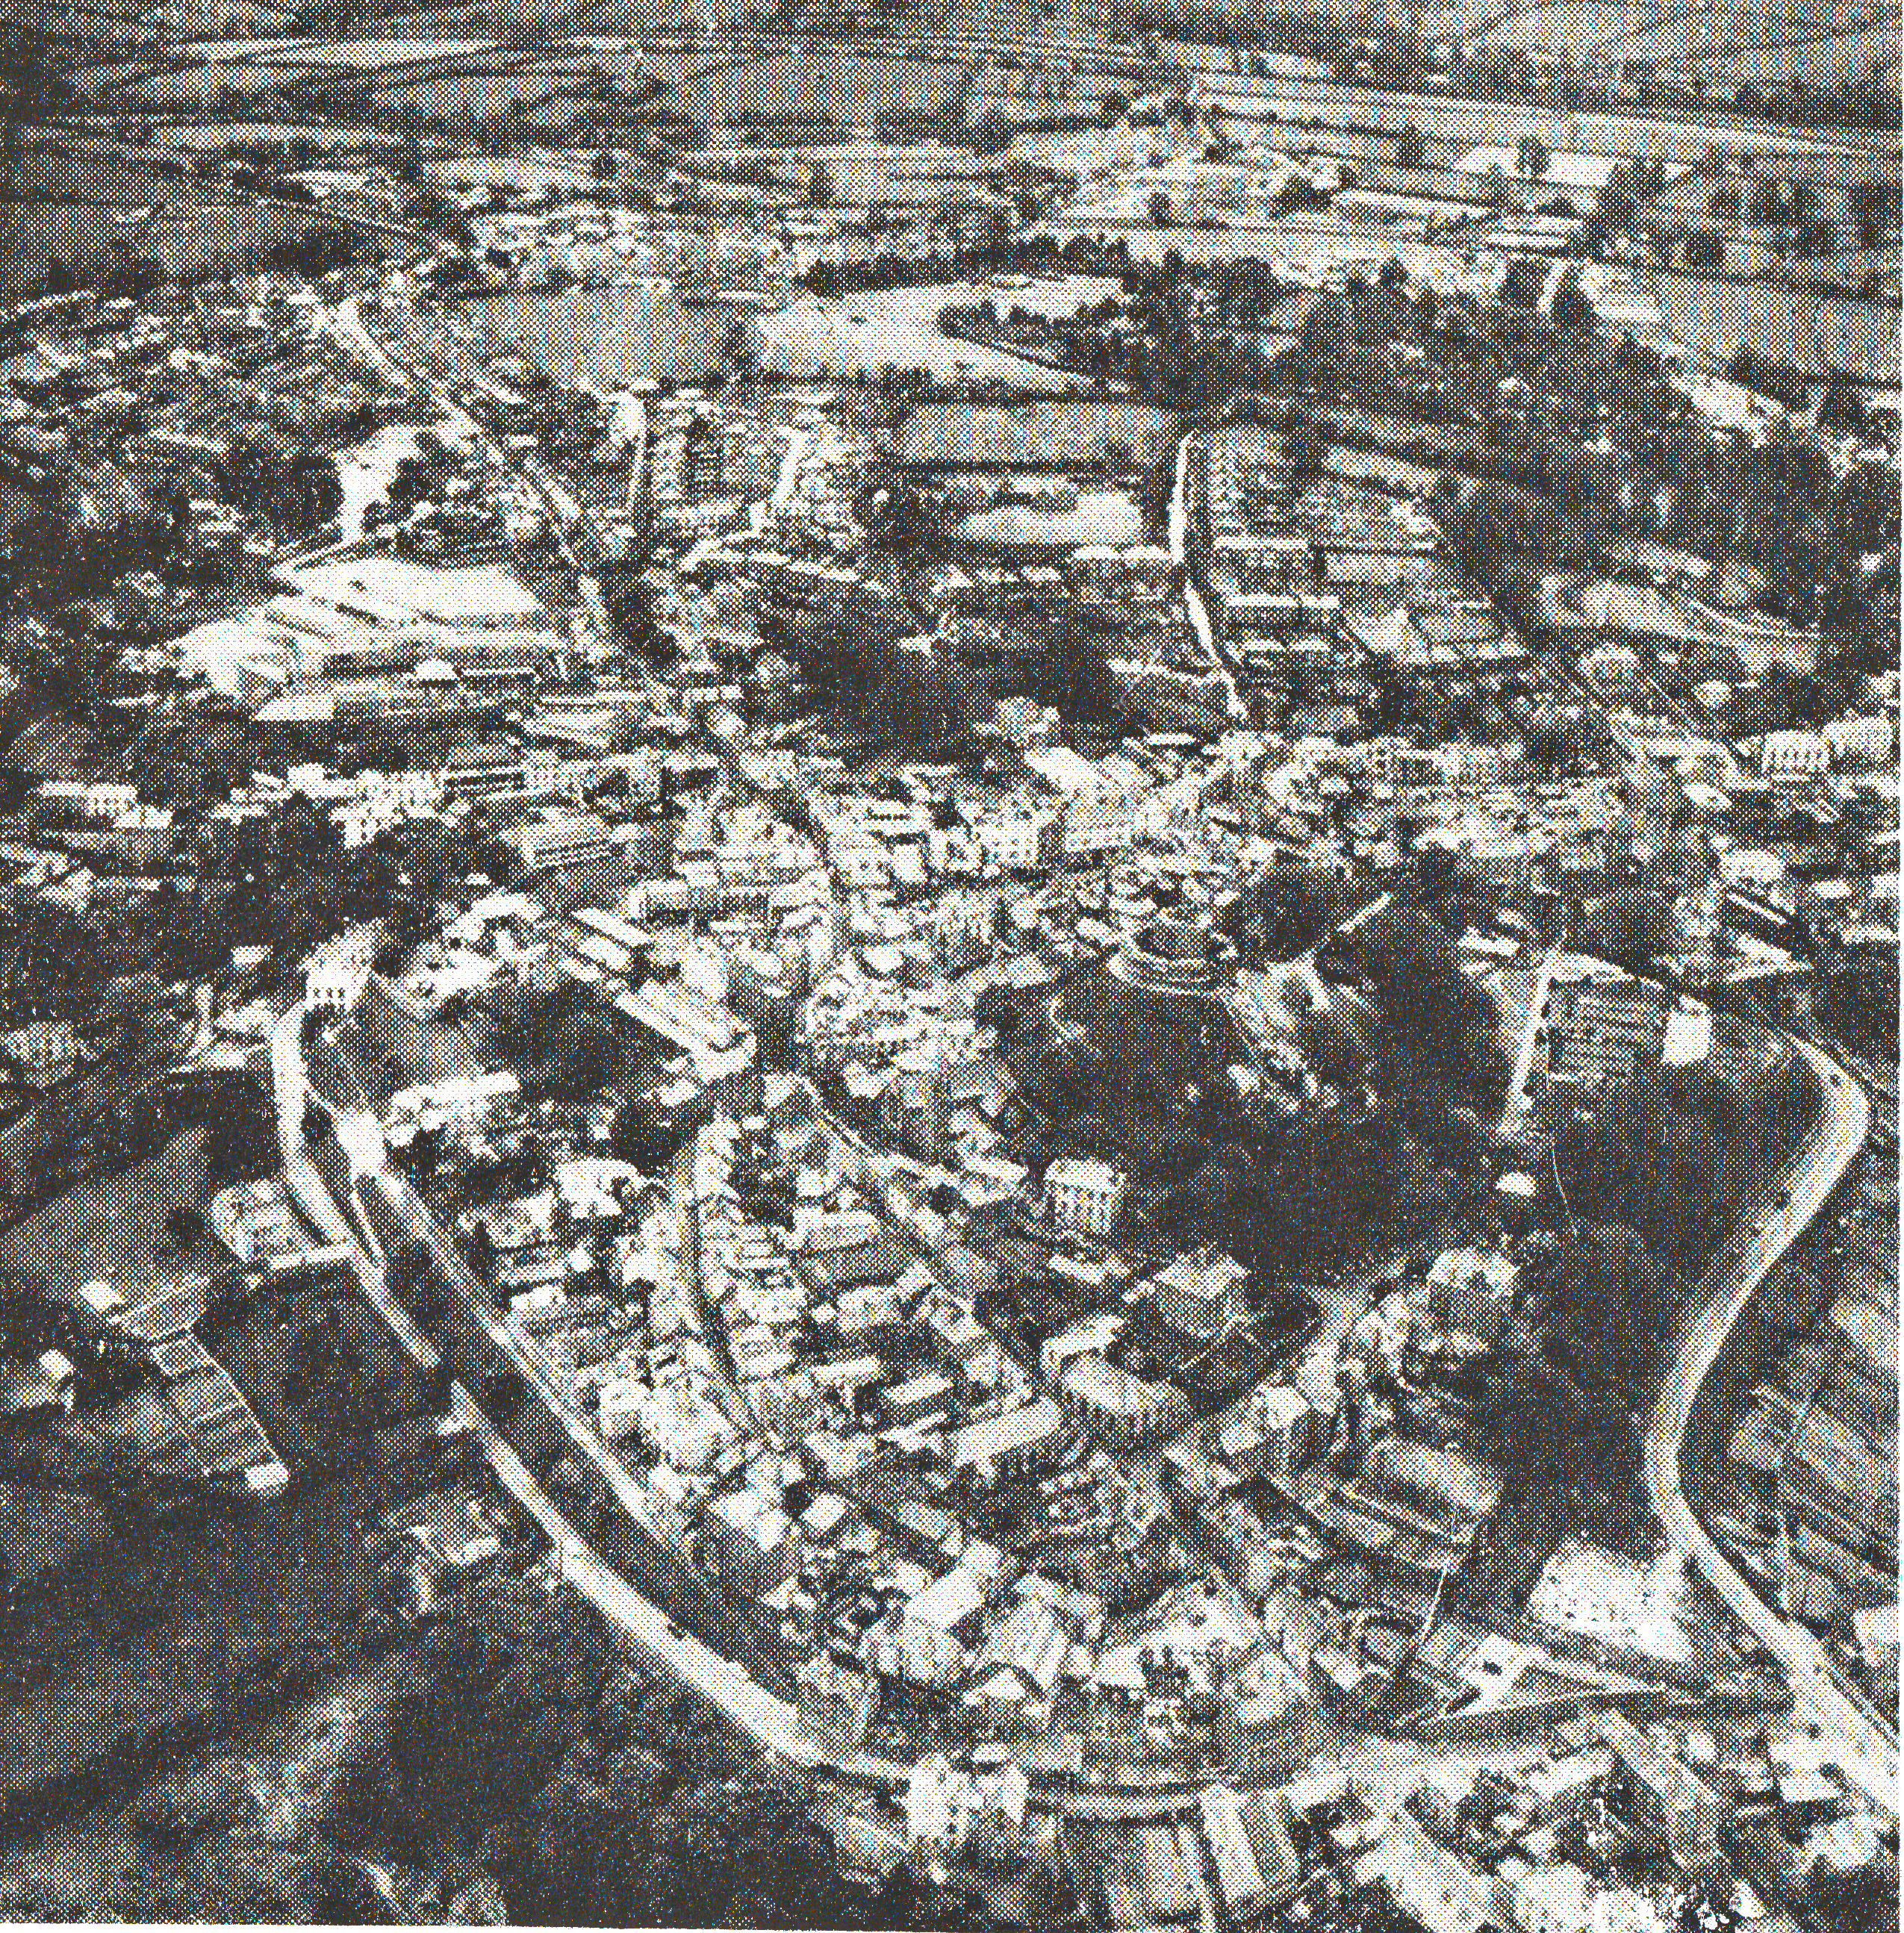 Aerial of Launceston from 1962.